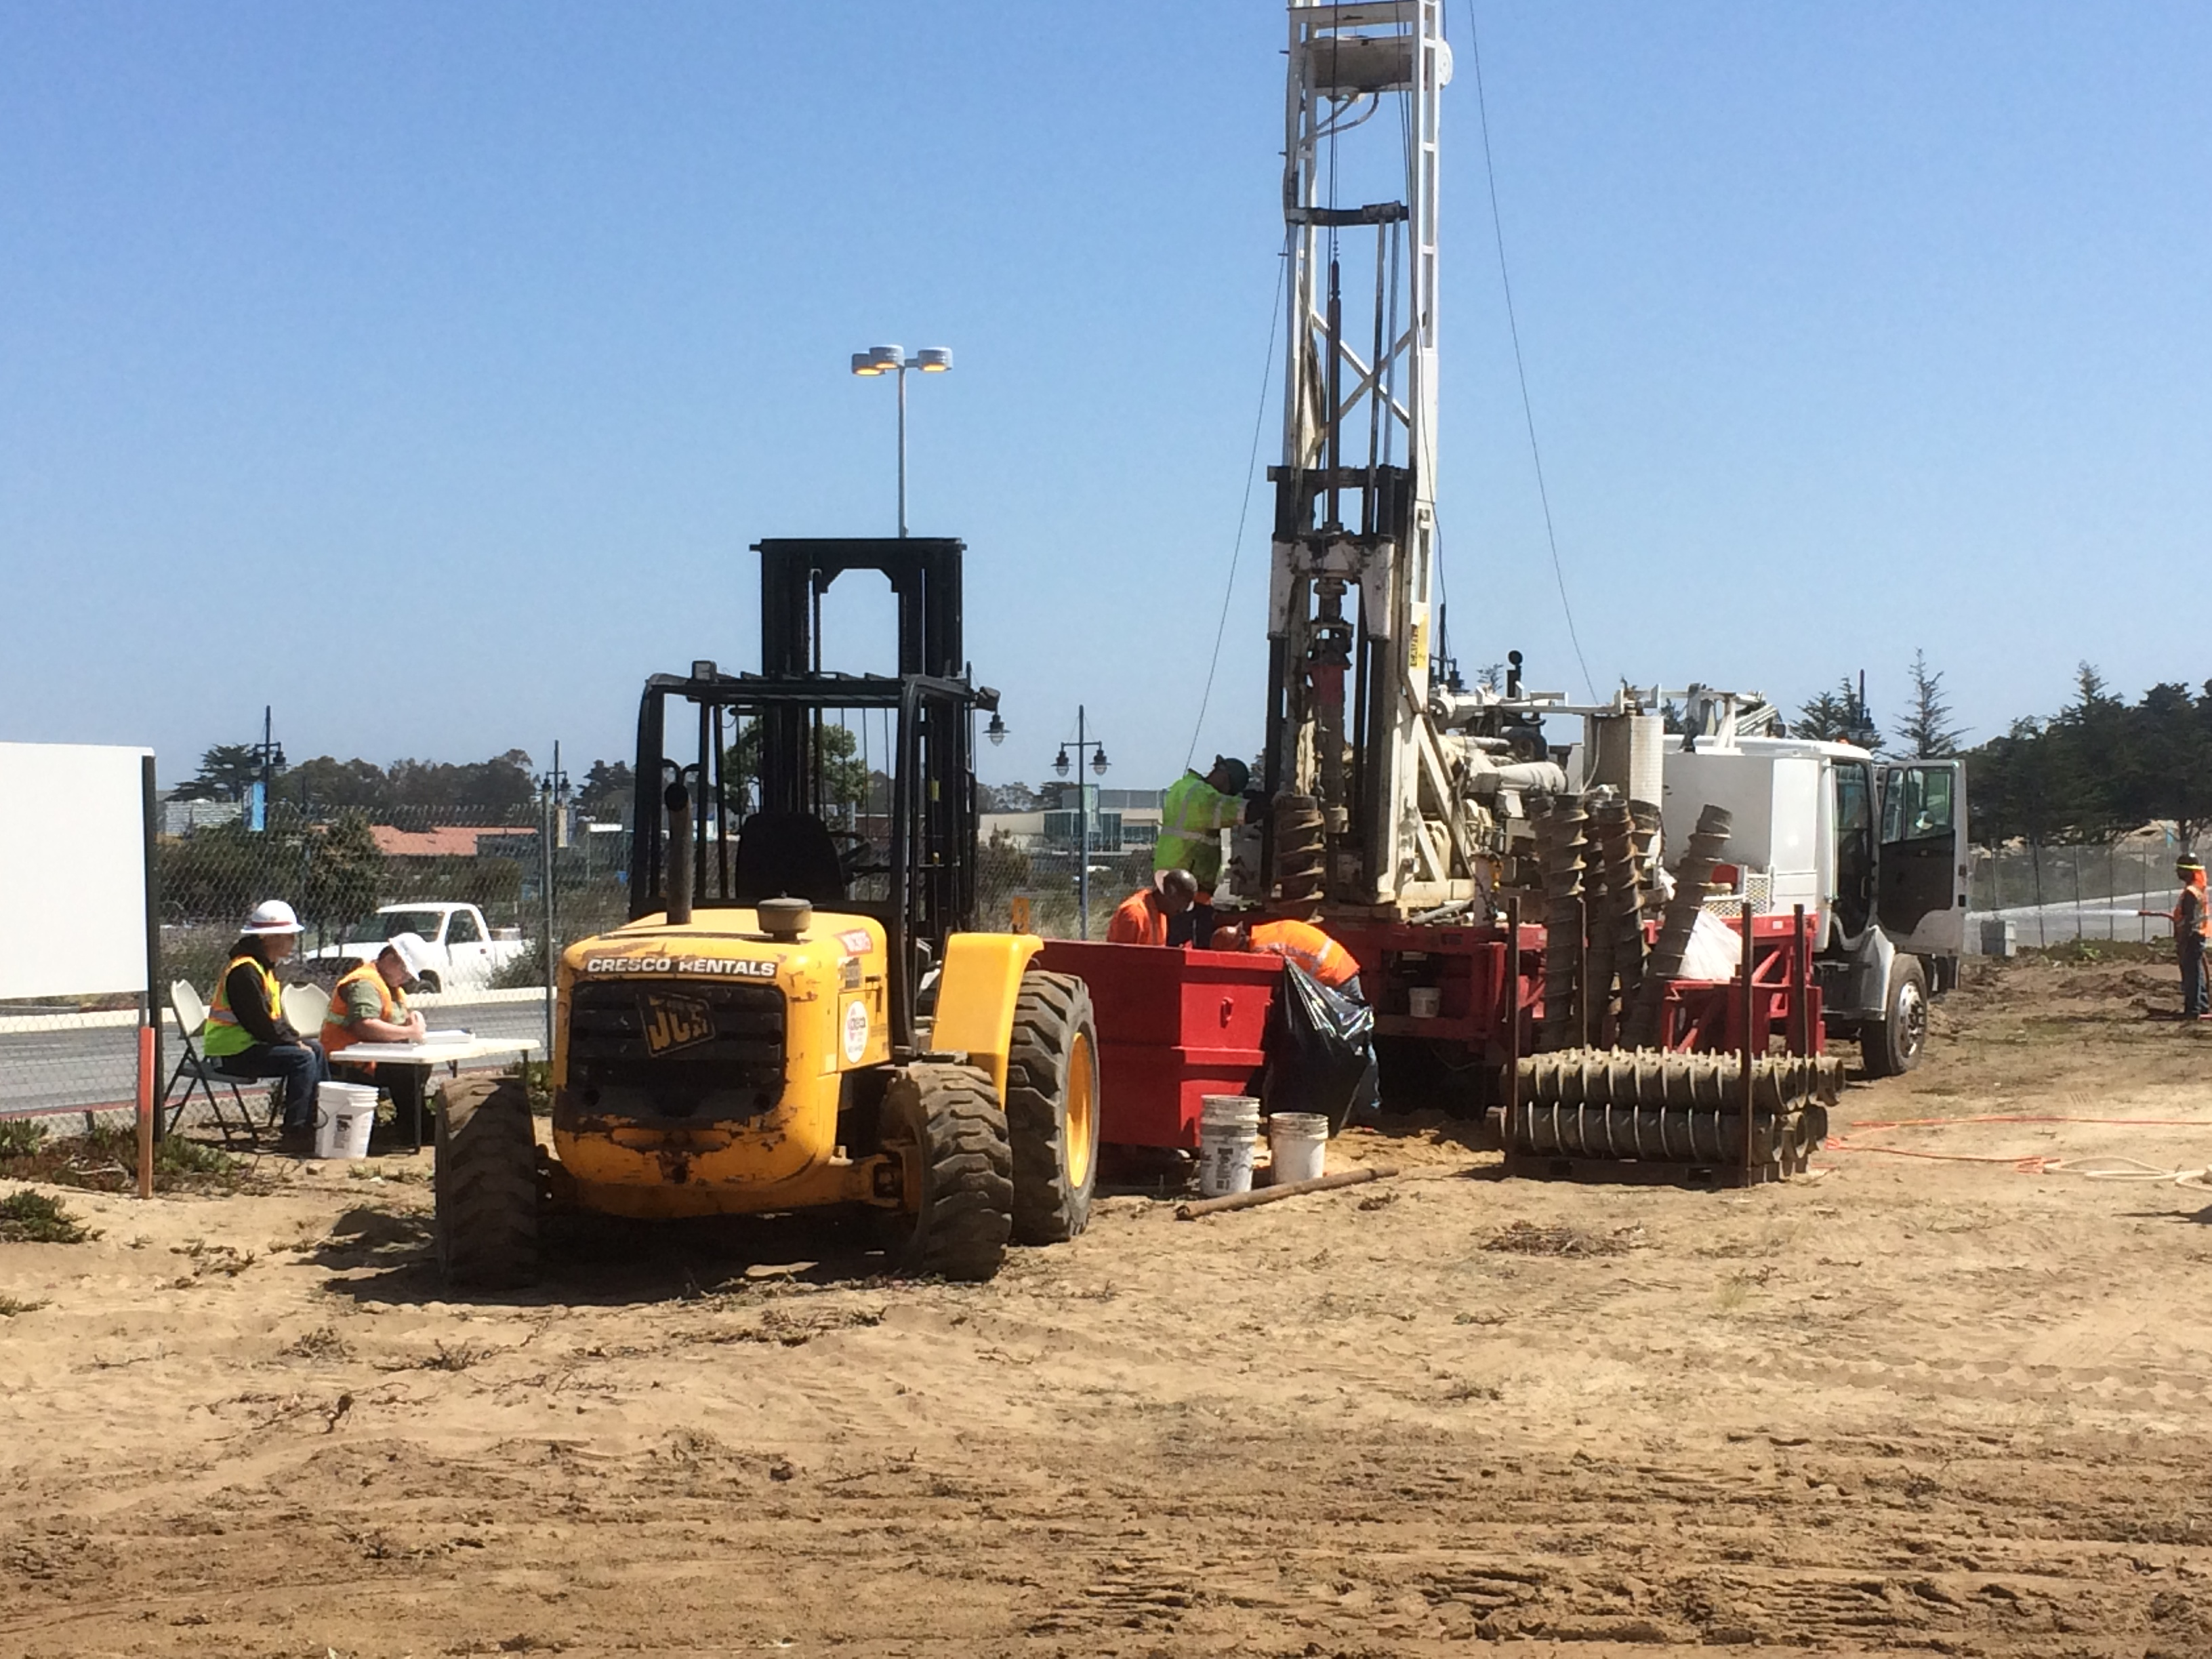 Drill rig at Dunes Shopping with geologists cateloging soils see CHOMP in background